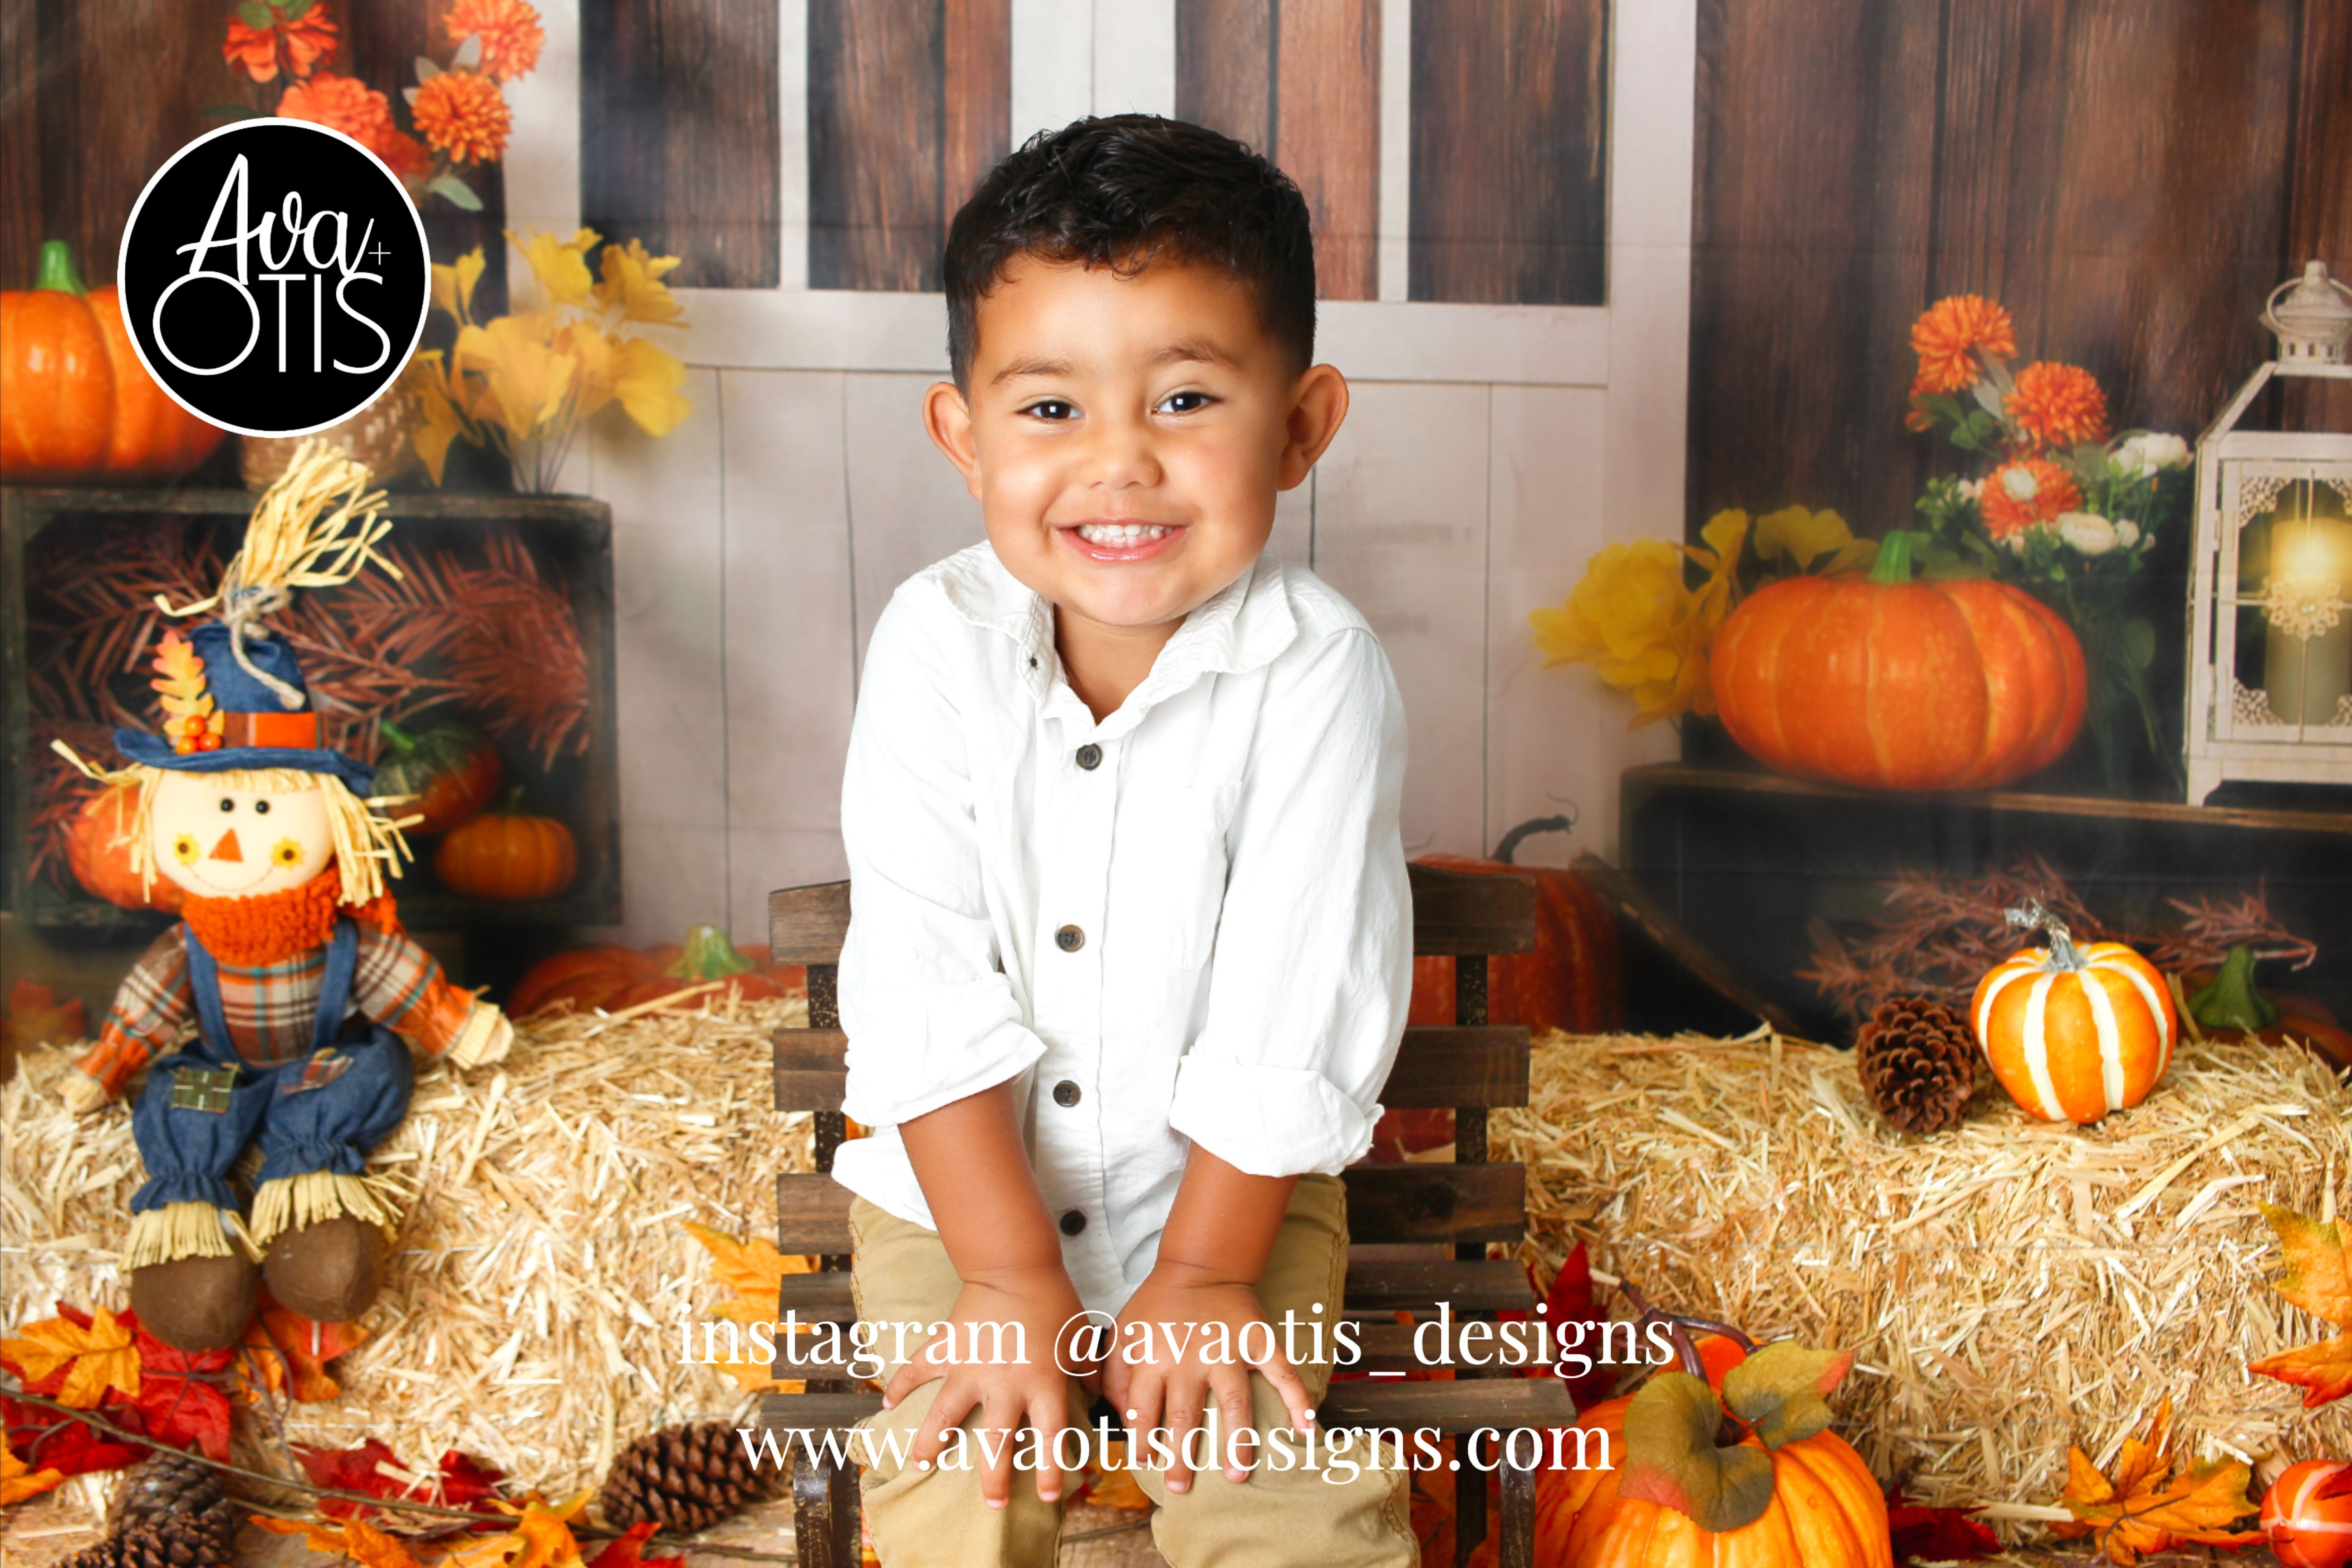 Pumpkin Patch Thanksgiving Fall Autumn Child Sibling Family Outdoor Theme Photography In 2020 Mini Sessions Family Outdoor Pumpkin Patch